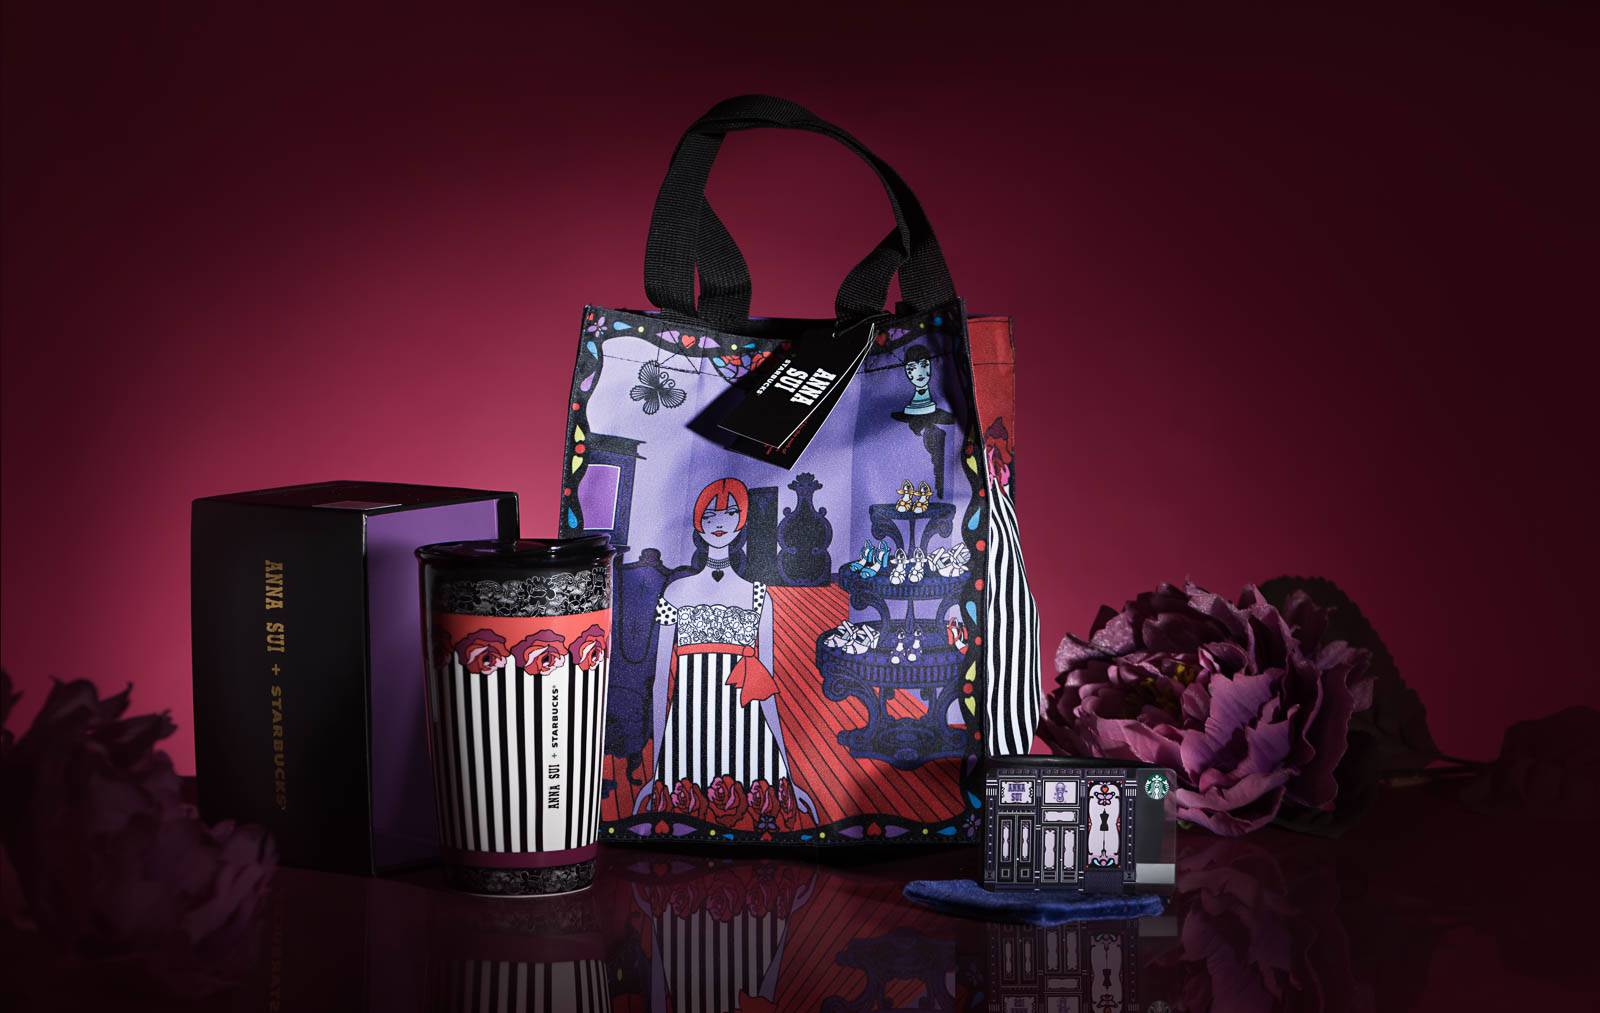 Starbucks X Anna Sui for Christmas